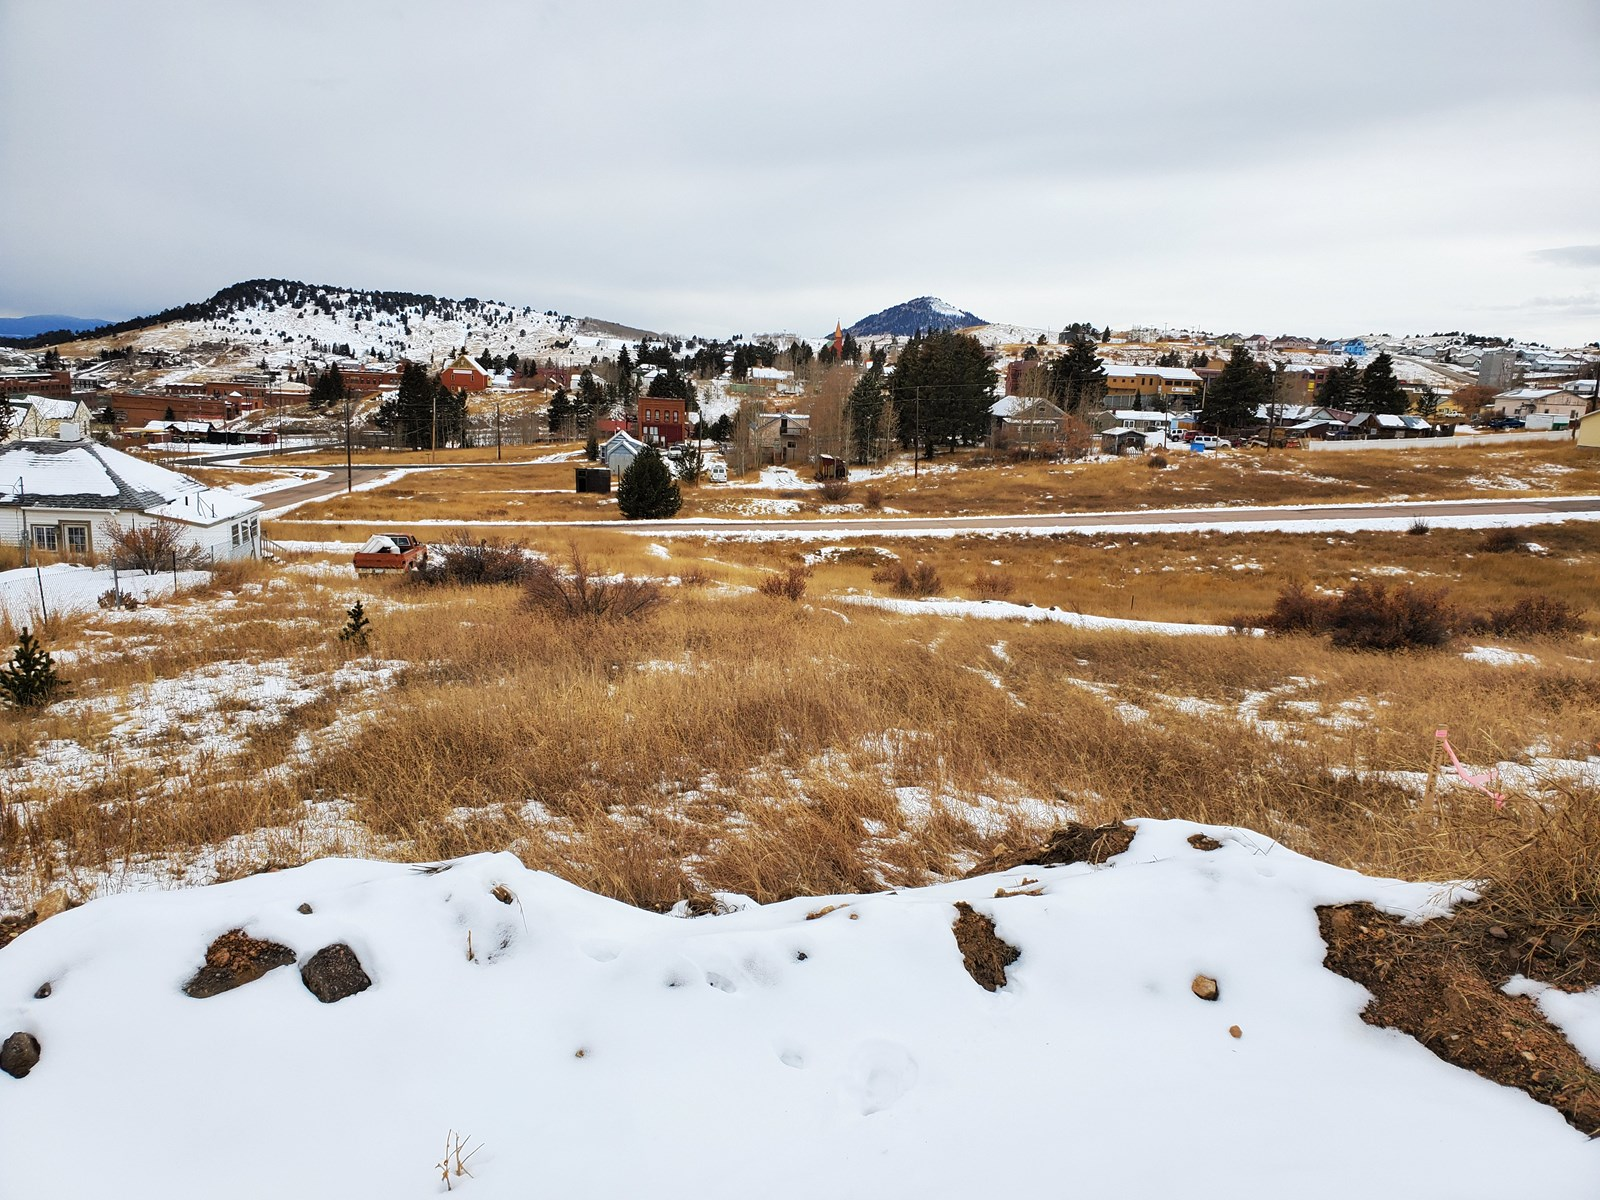 Land for Sale in Cripple Creek near Railroad & Museum